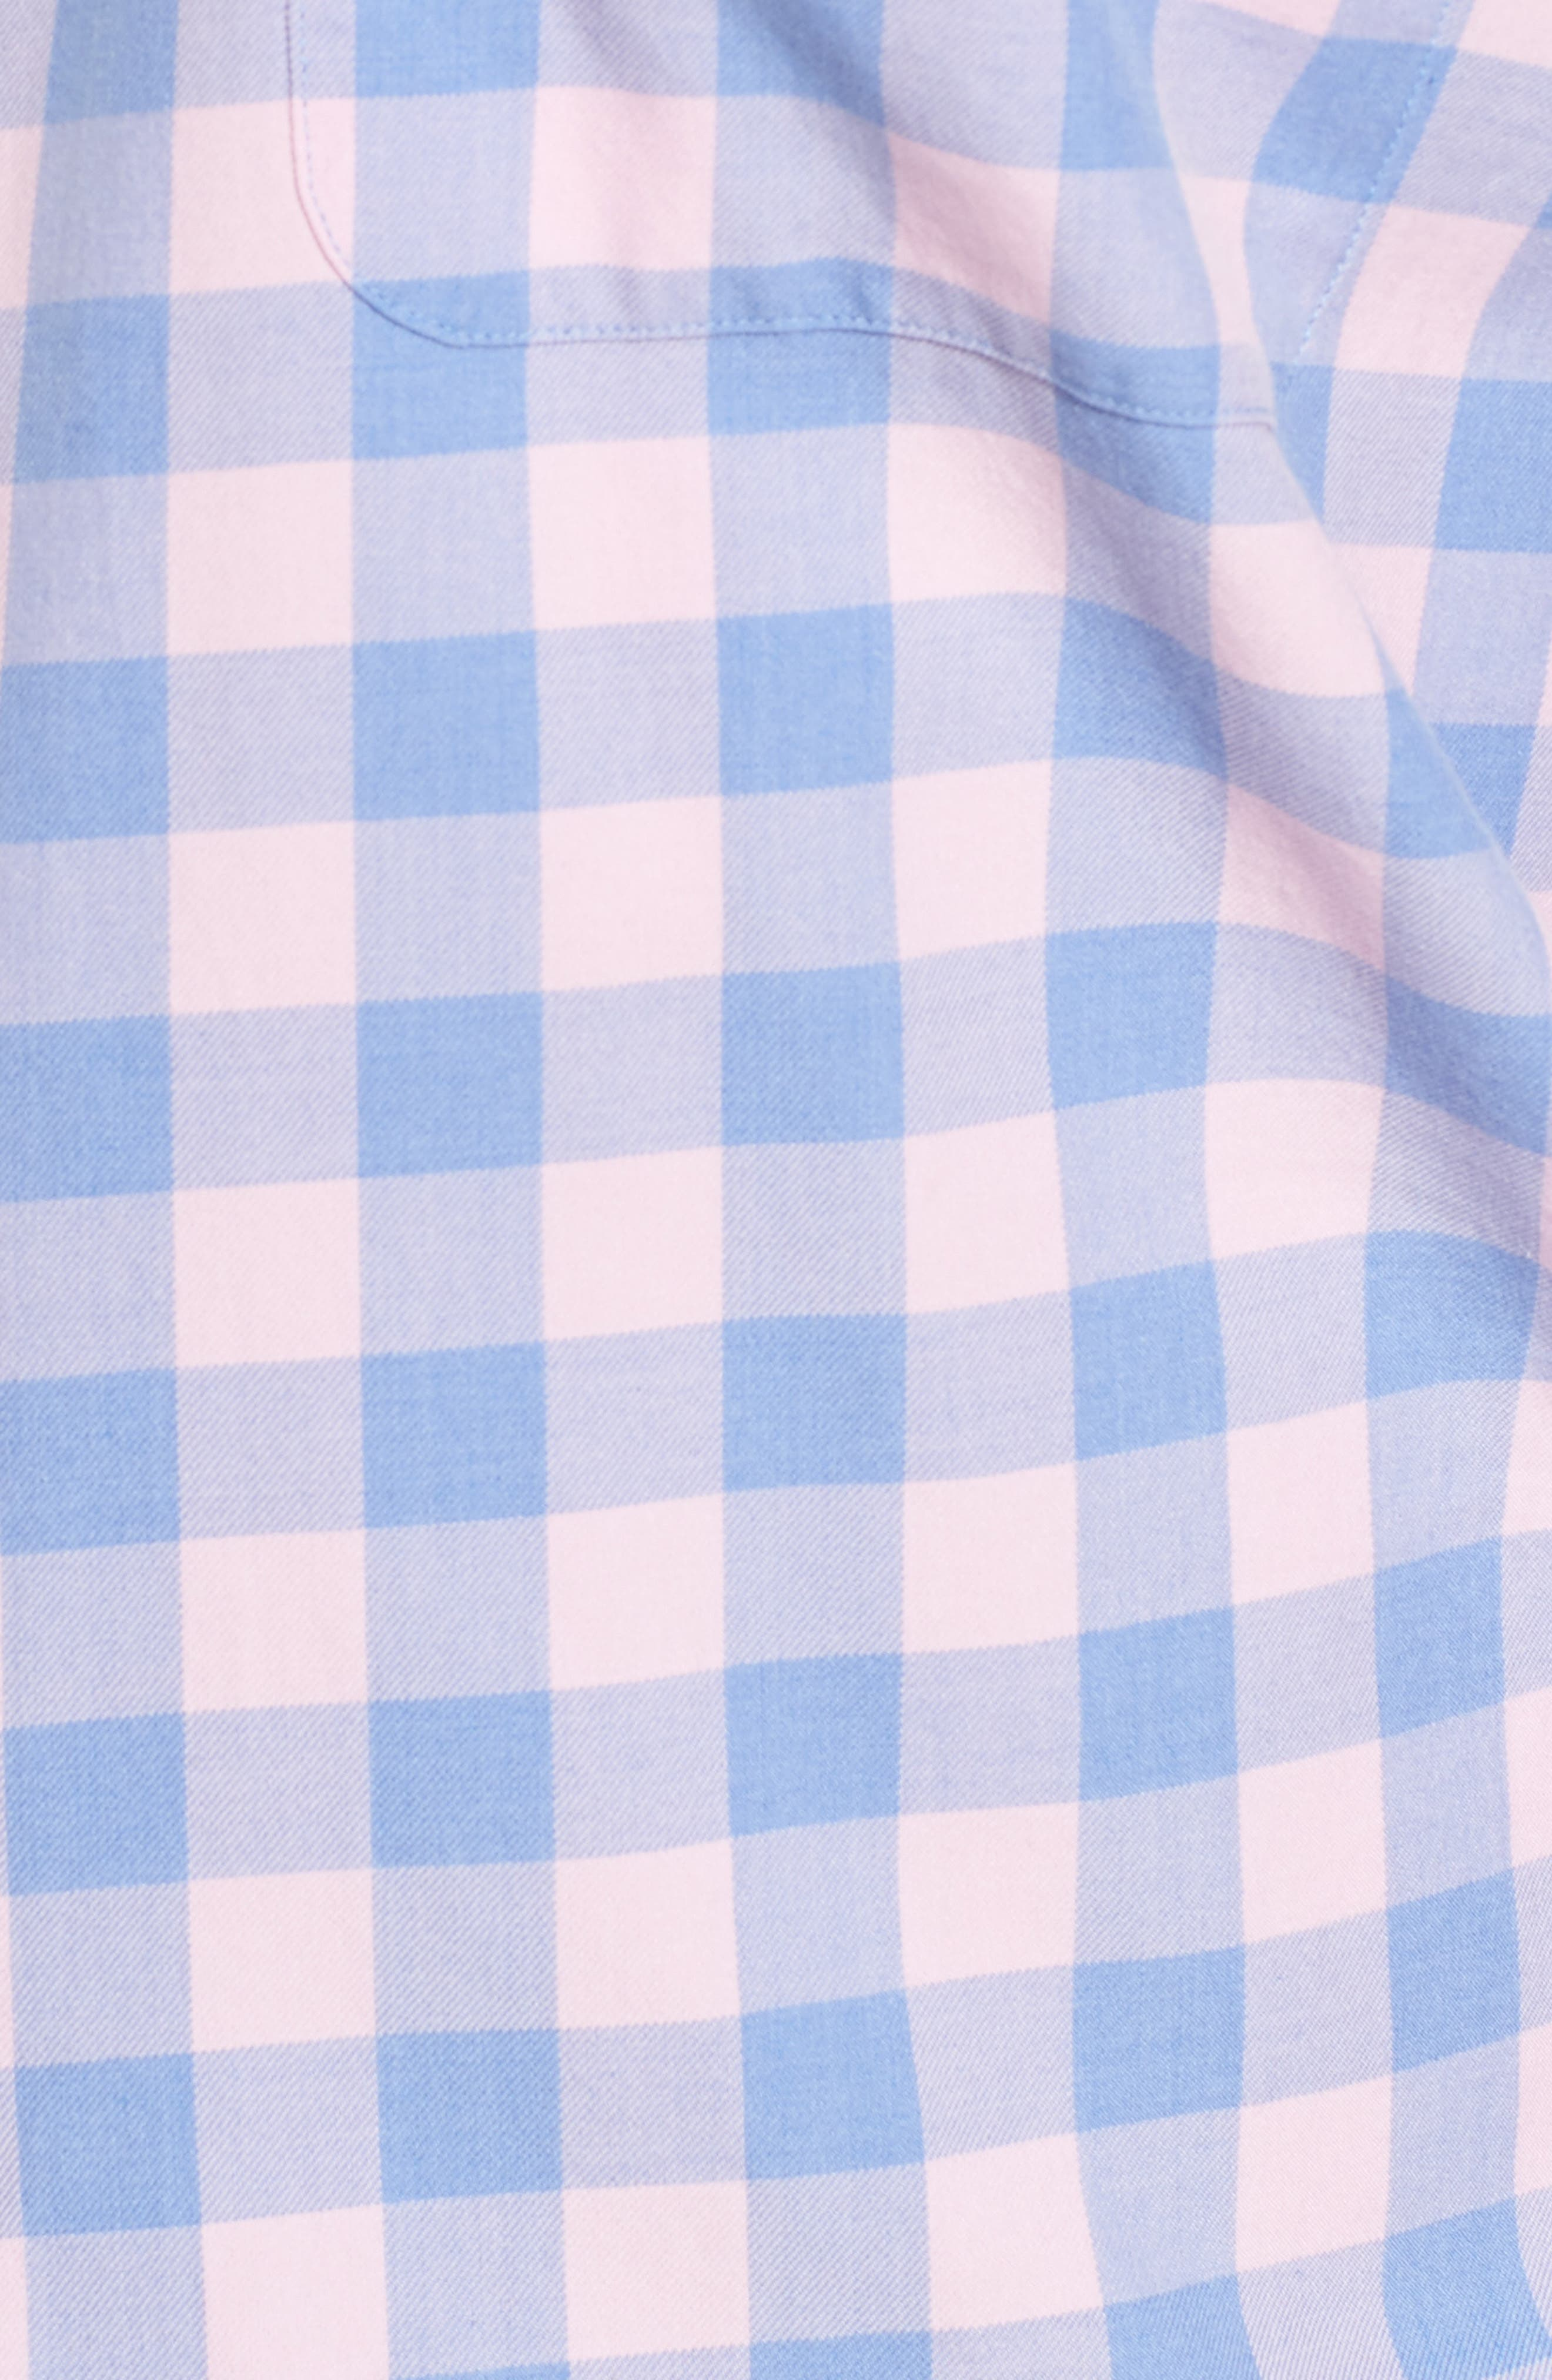 Seaglass Gingham Check Sport Shirt,                             Alternate thumbnail 5, color,                             407